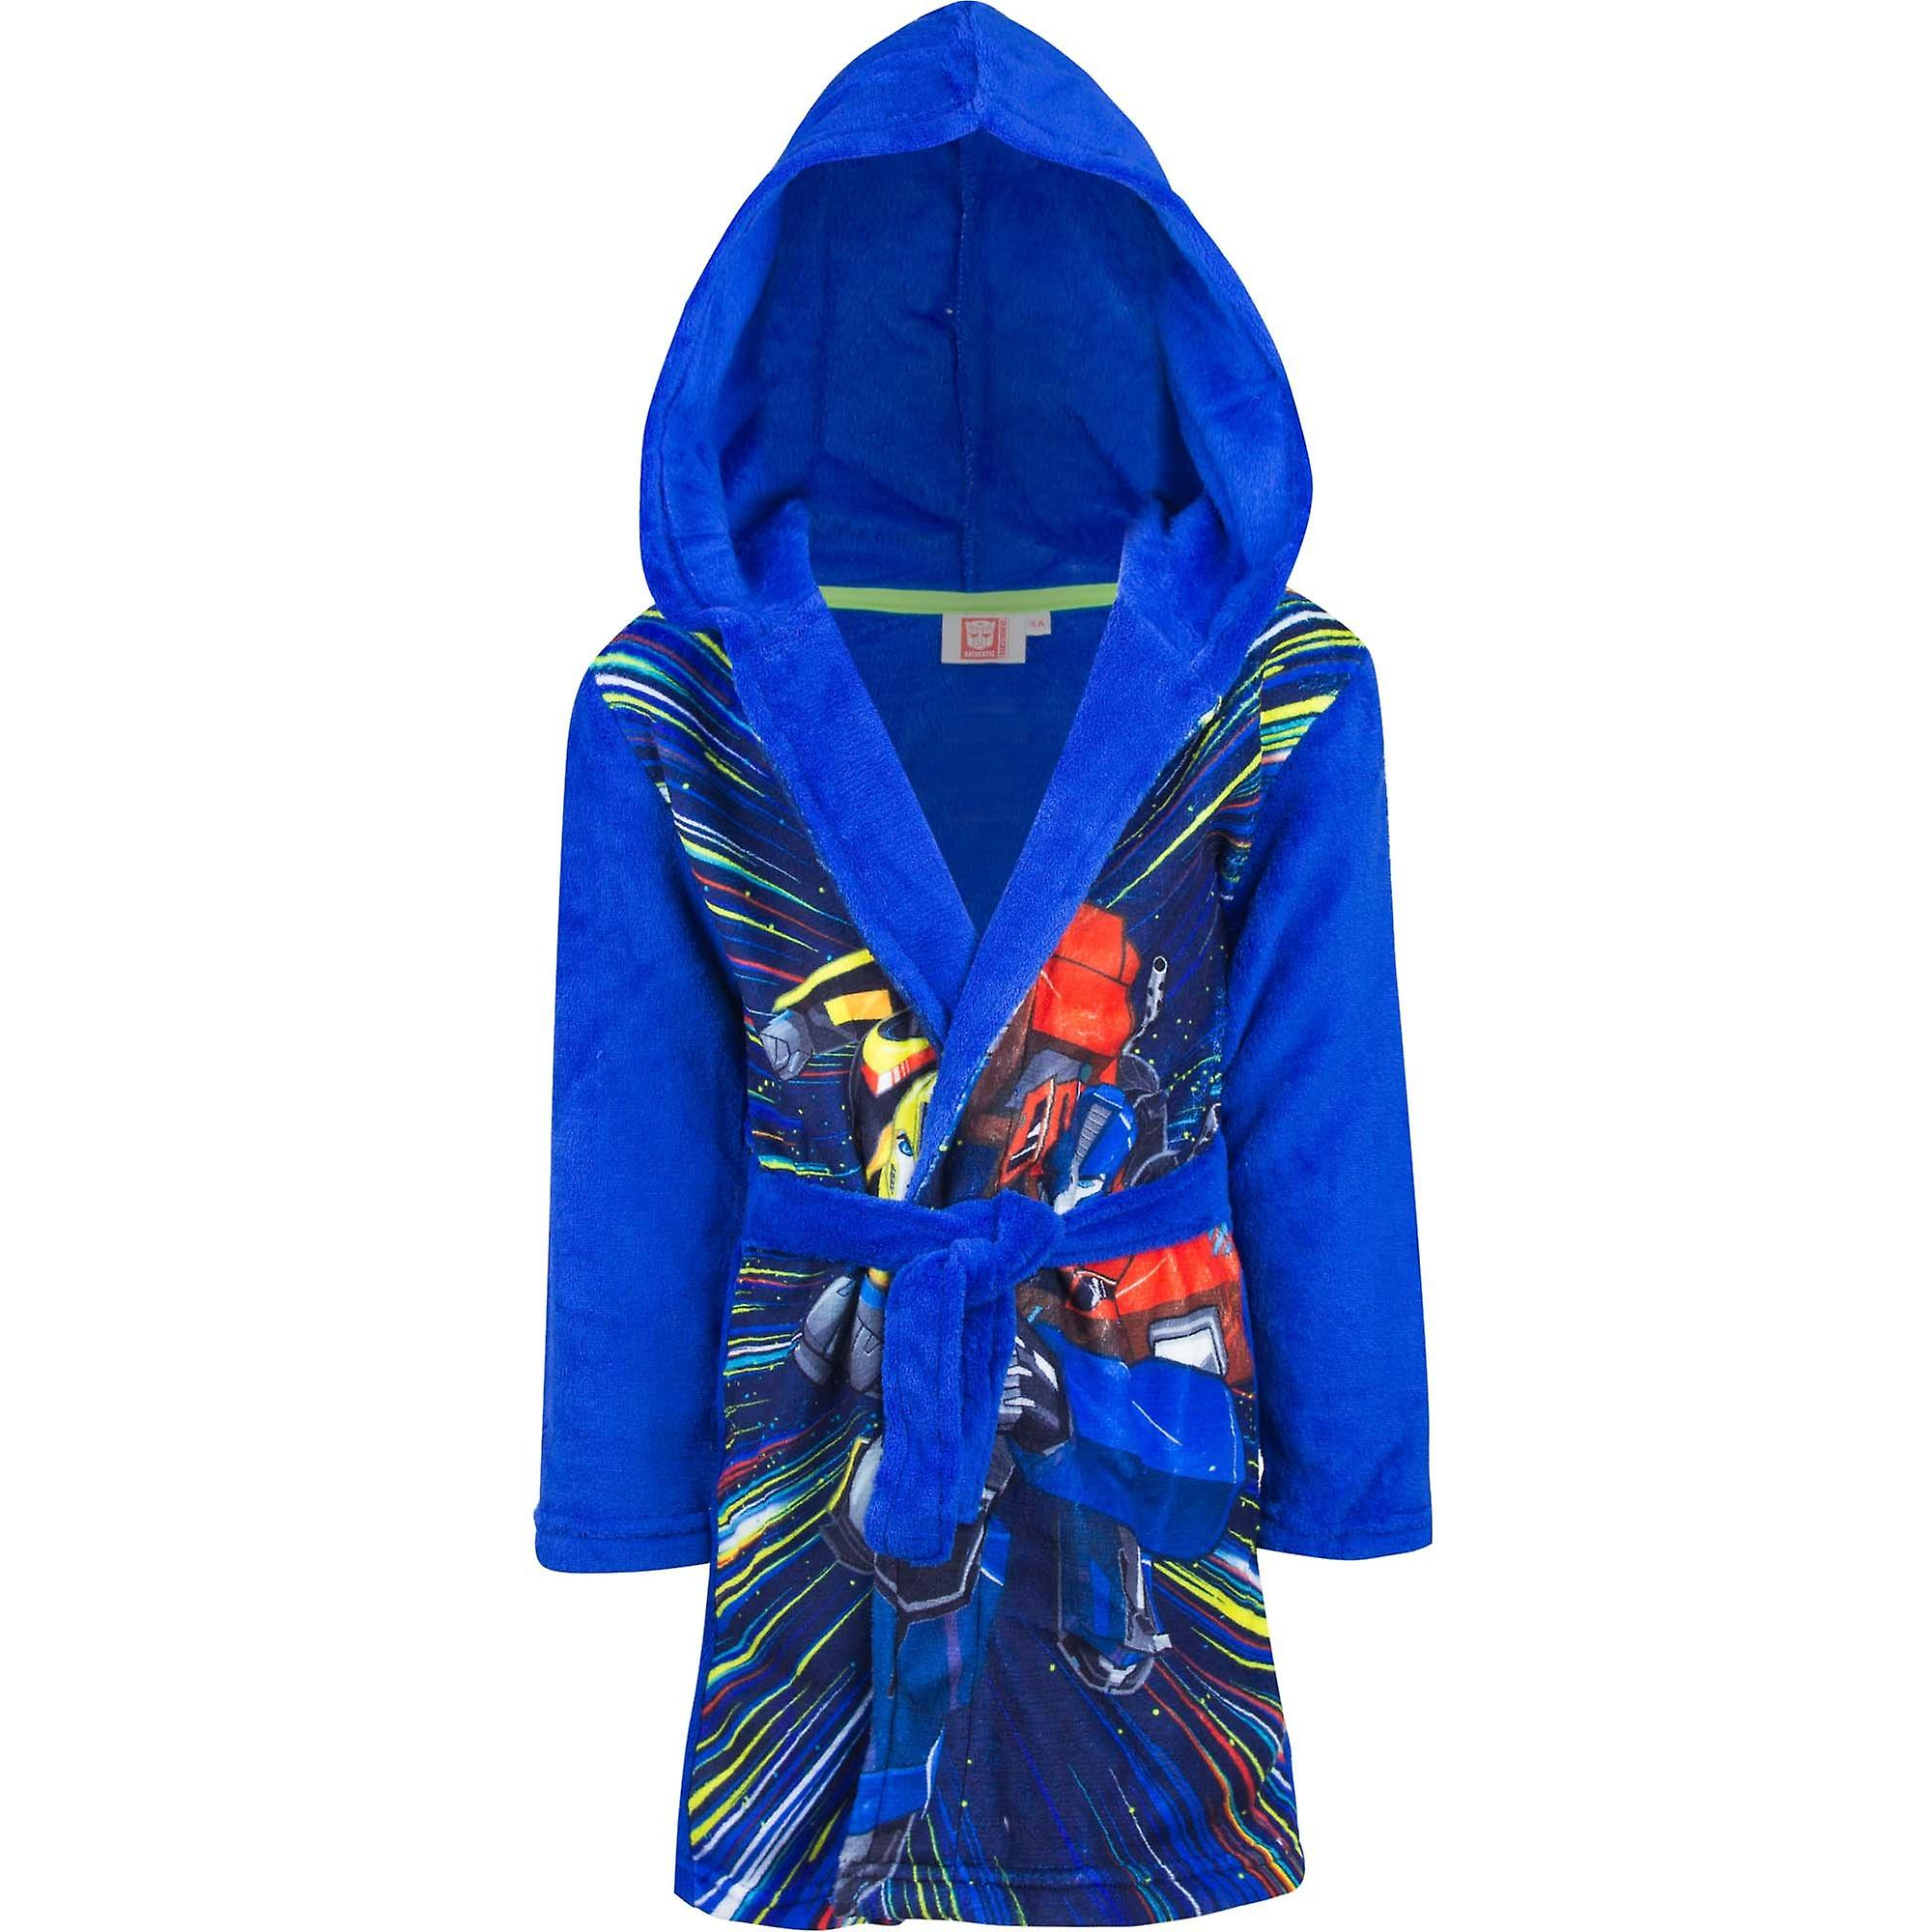 Transformers boys dressing gown bathrobe